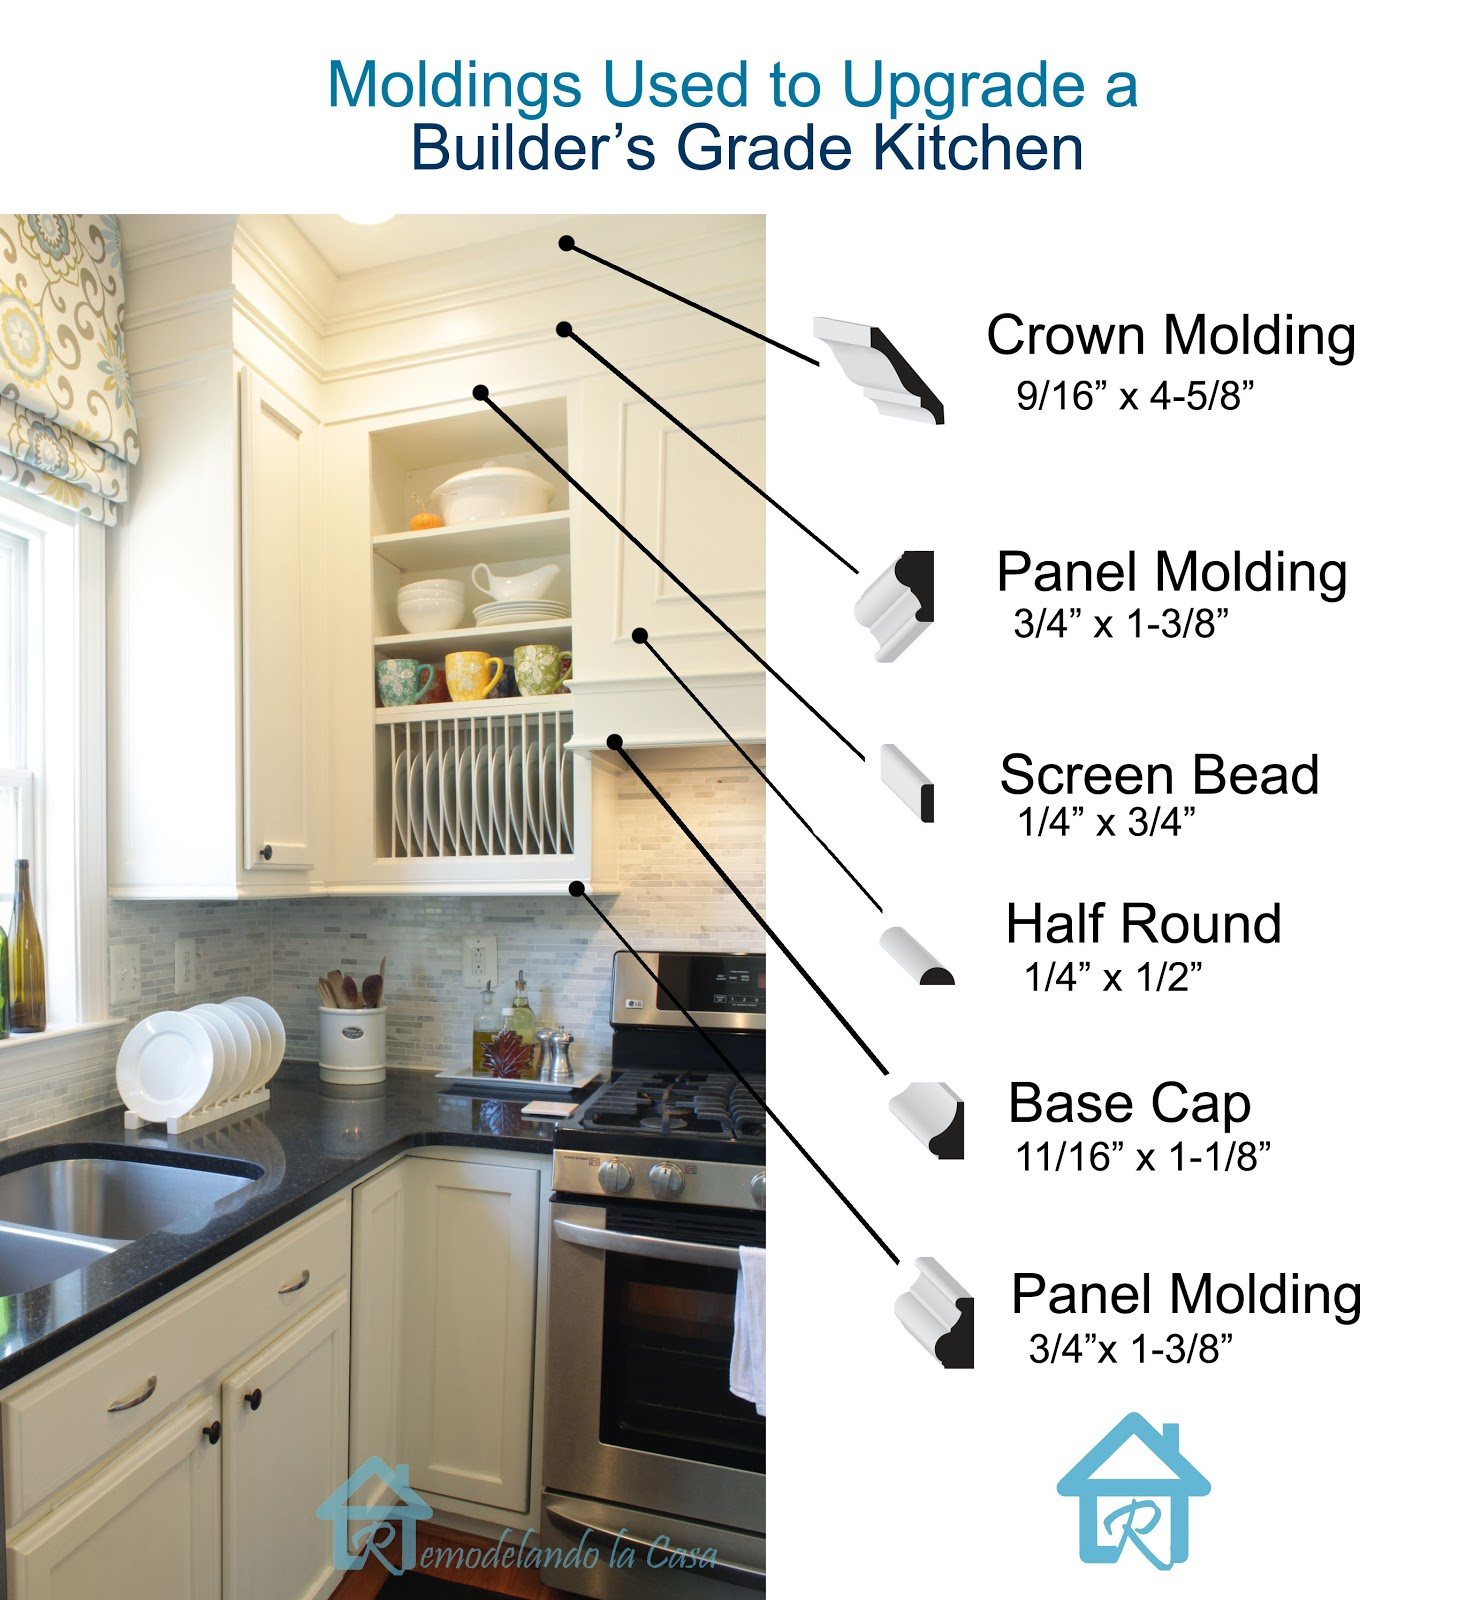 Adding moldings to your kitchen cabinets remodelando la casa for Adding crown molding to existing kitchen cabinets